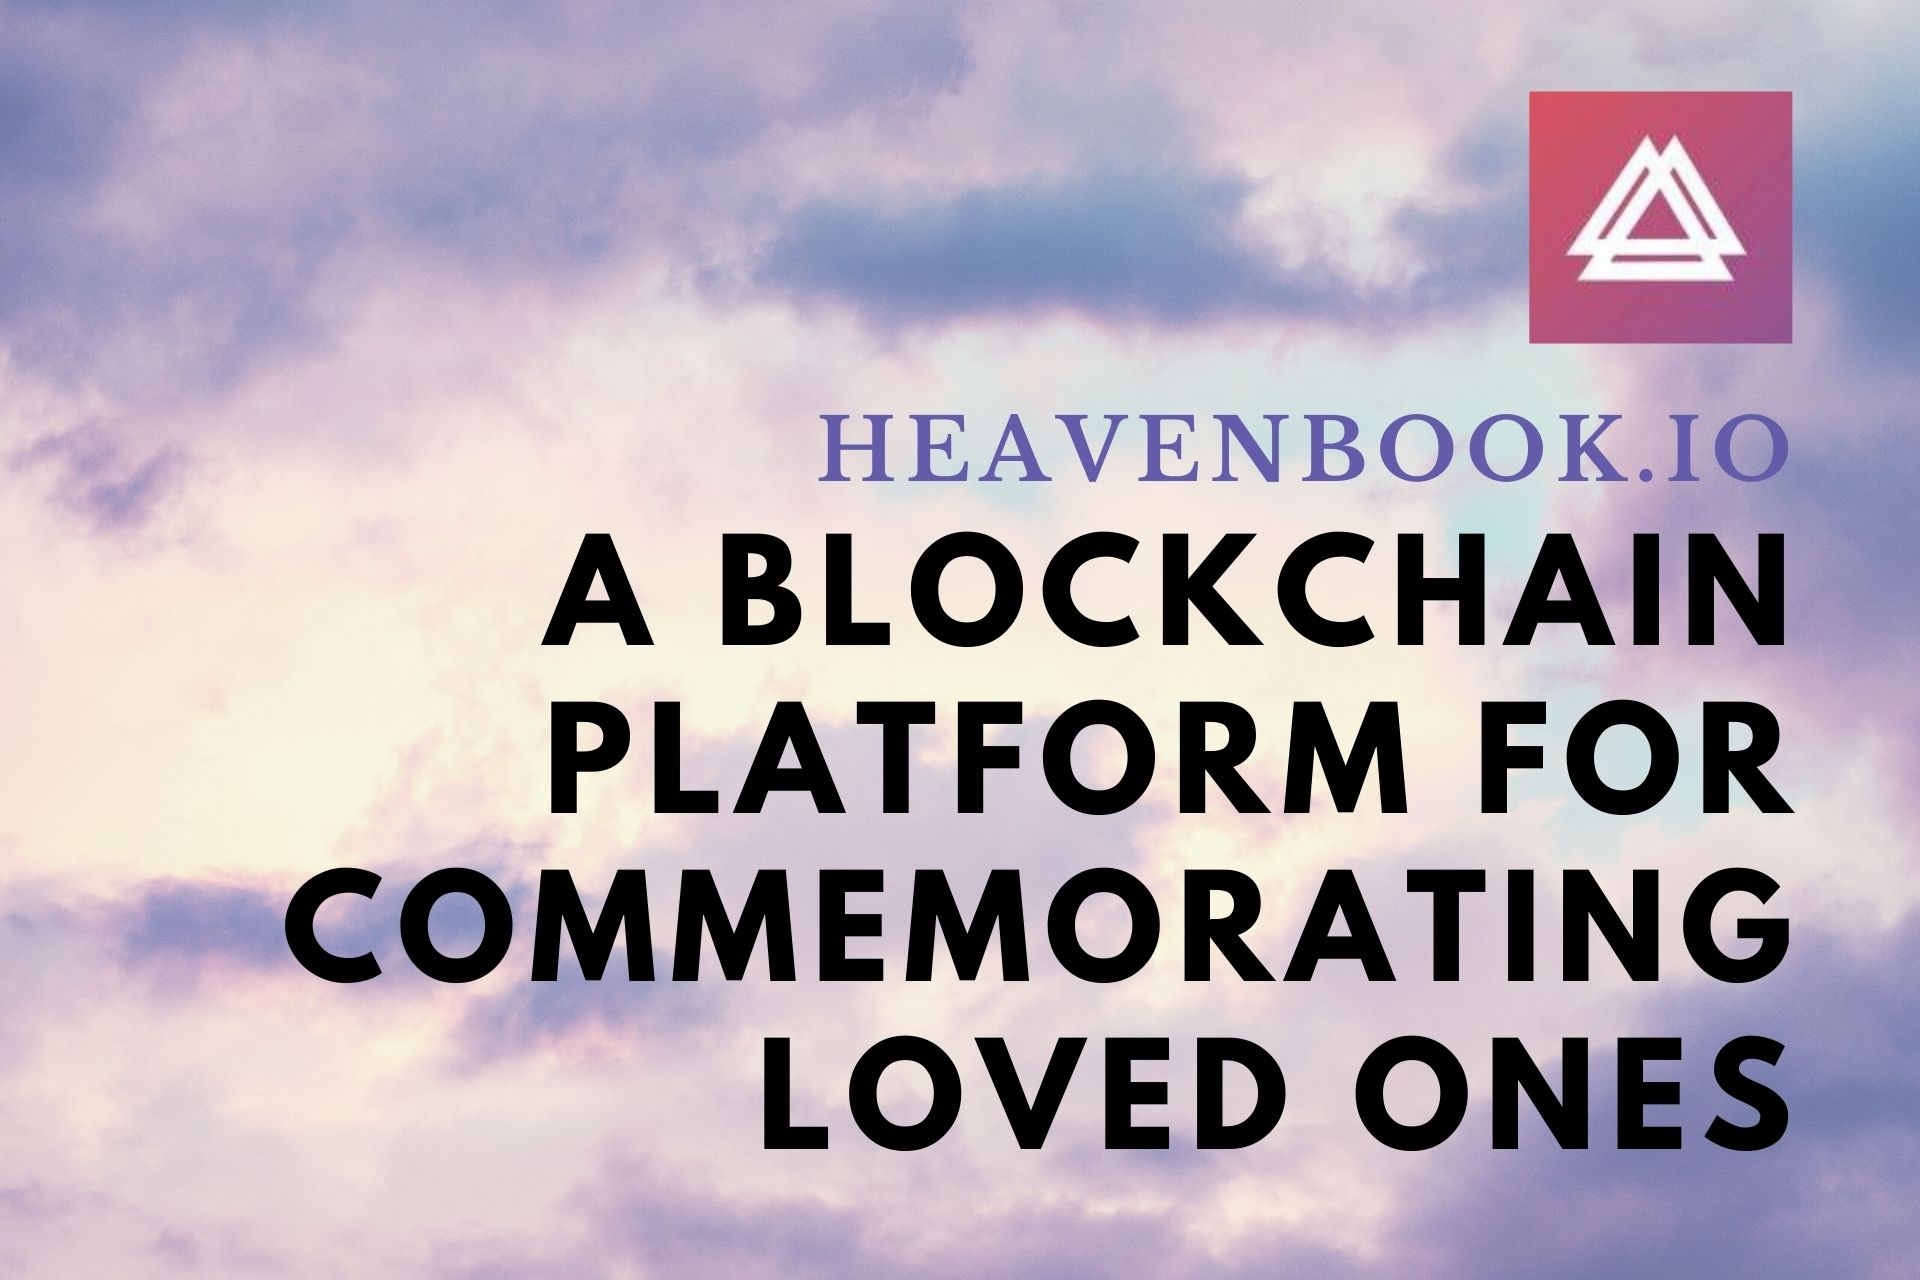 Heavenbook – A Blockchain Platform for Commemorating Past Heroes, Loved Ones, Plants, and Animals